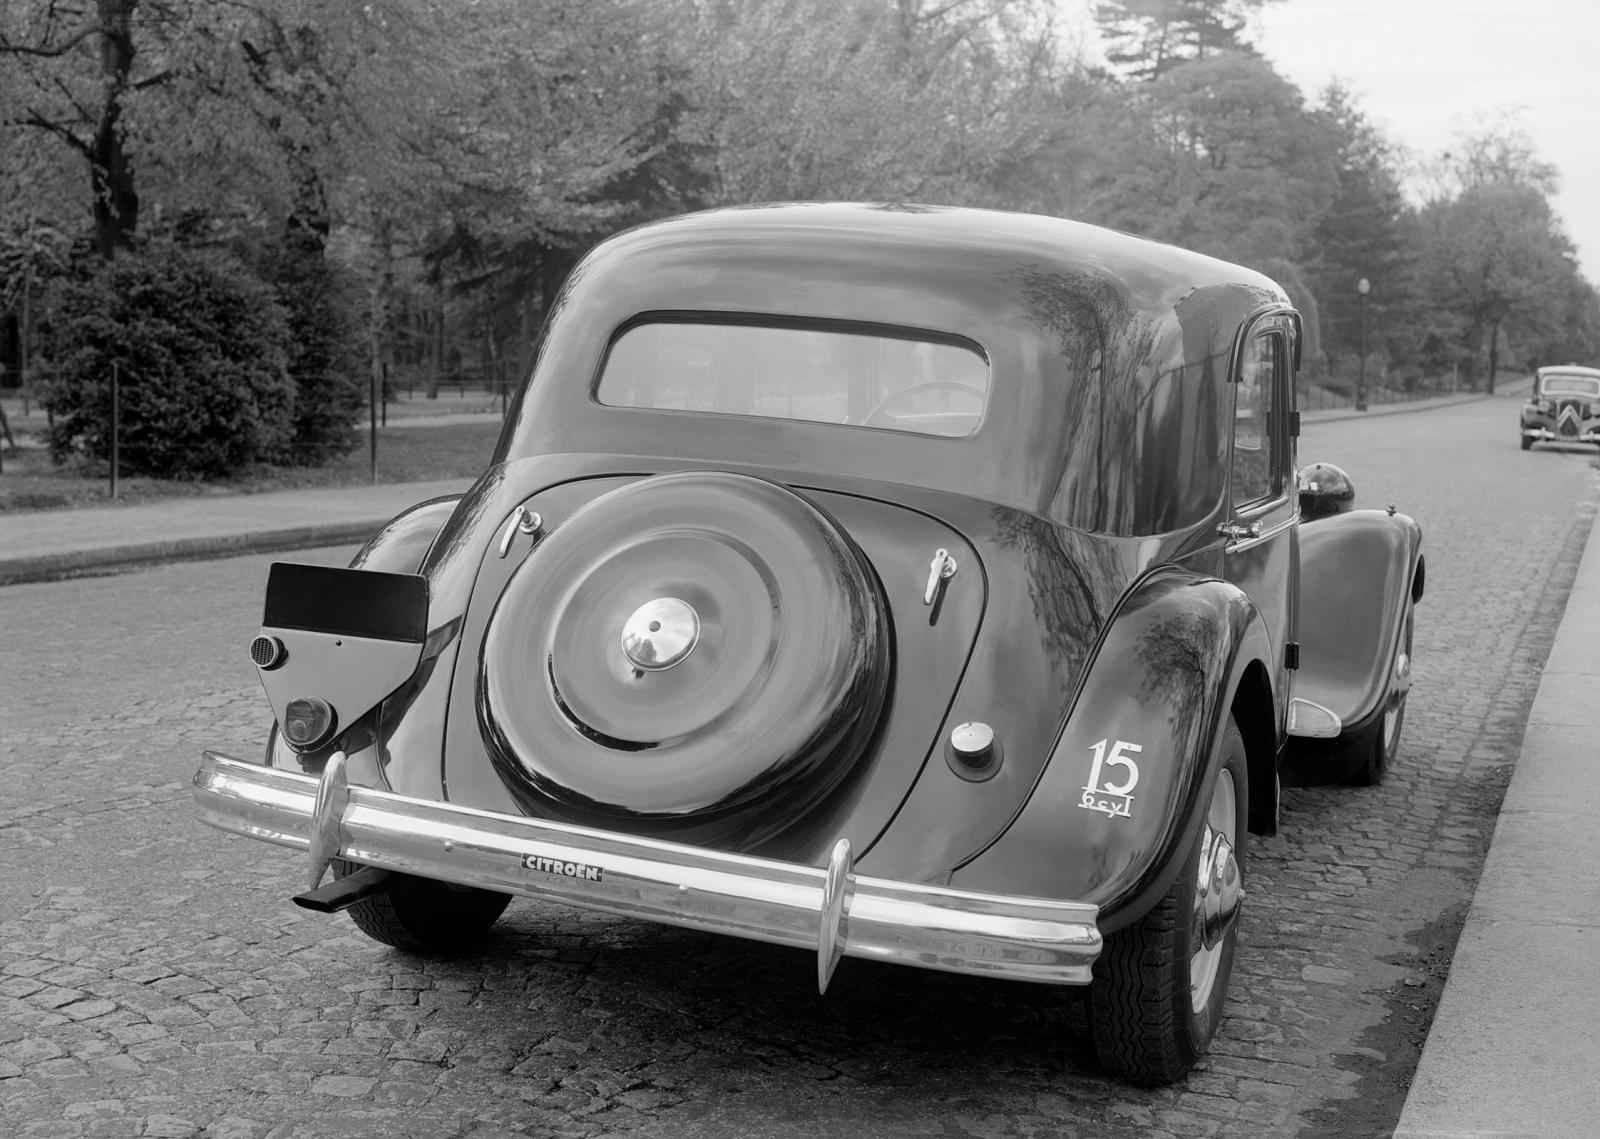 Traction 15 SIX G 1939